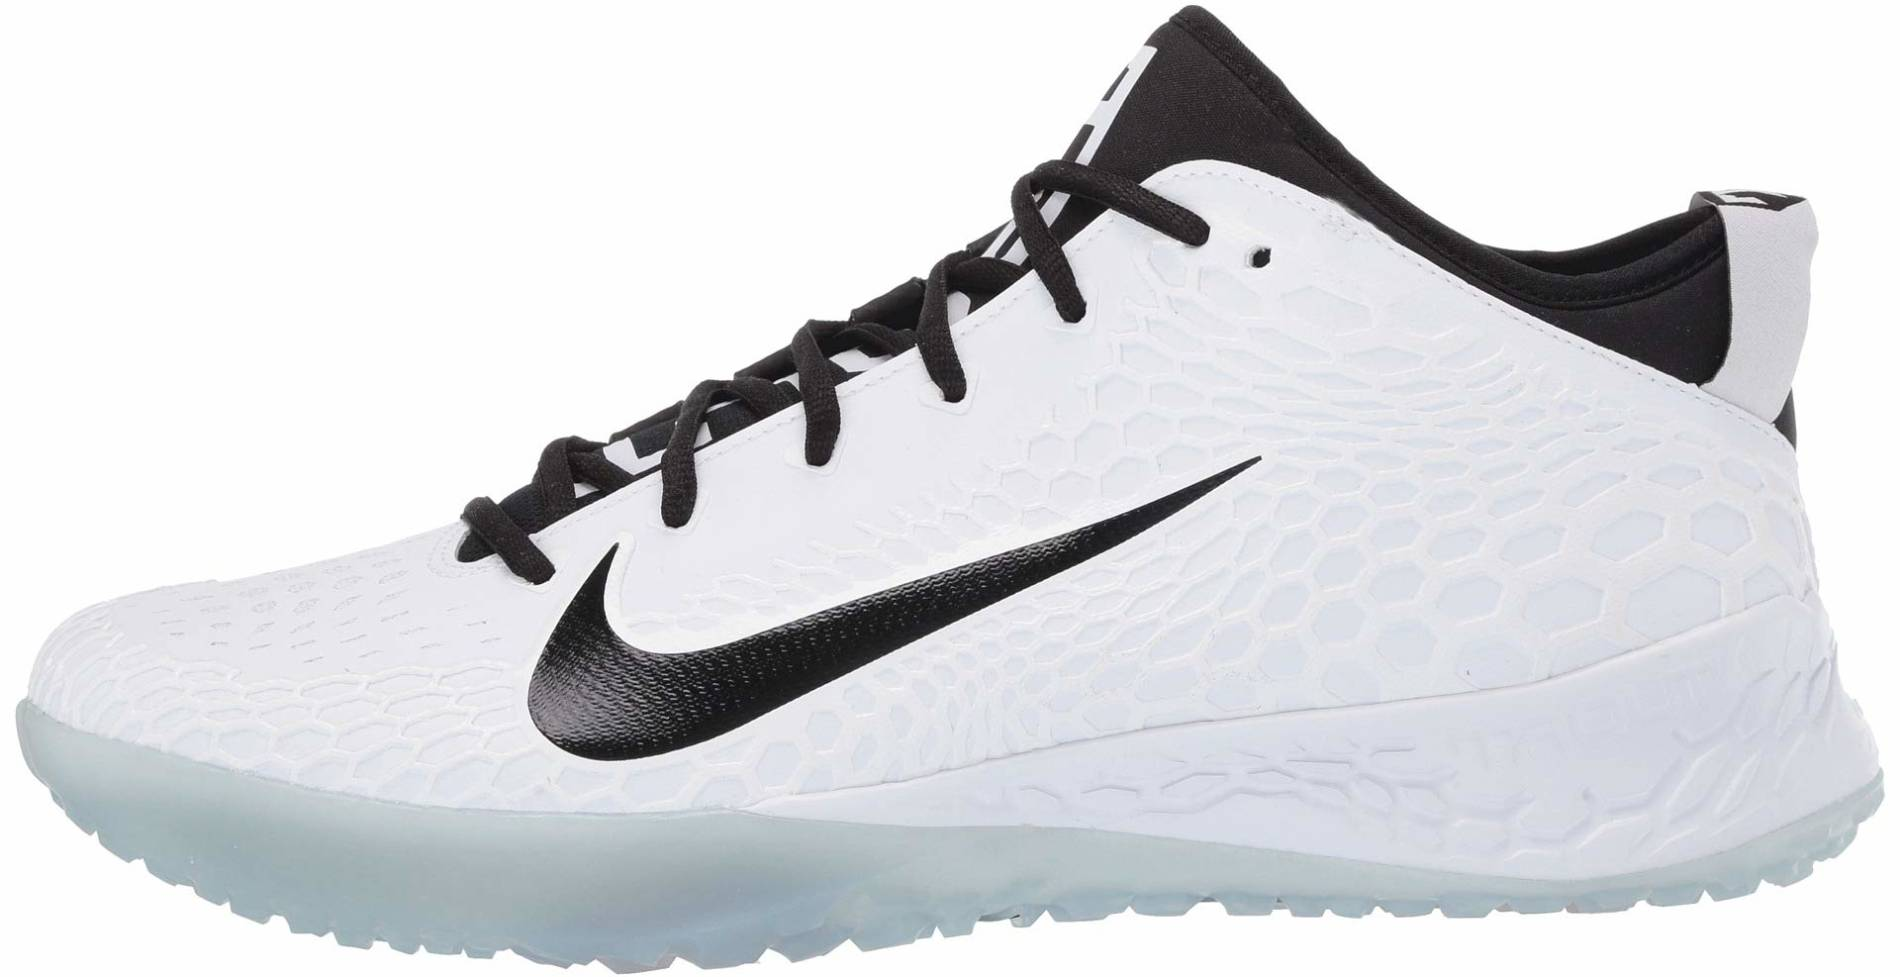 Nike Force Zoom Trout 5 Turf